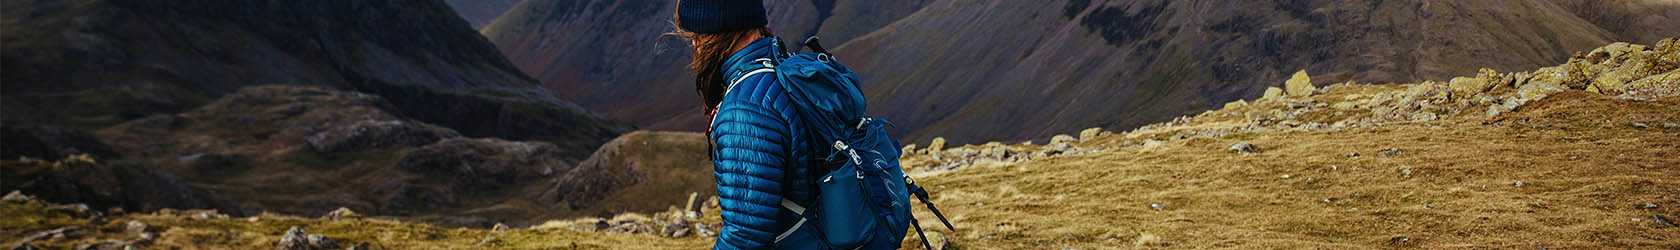 A person is walking on mountains, wearing a rucksack